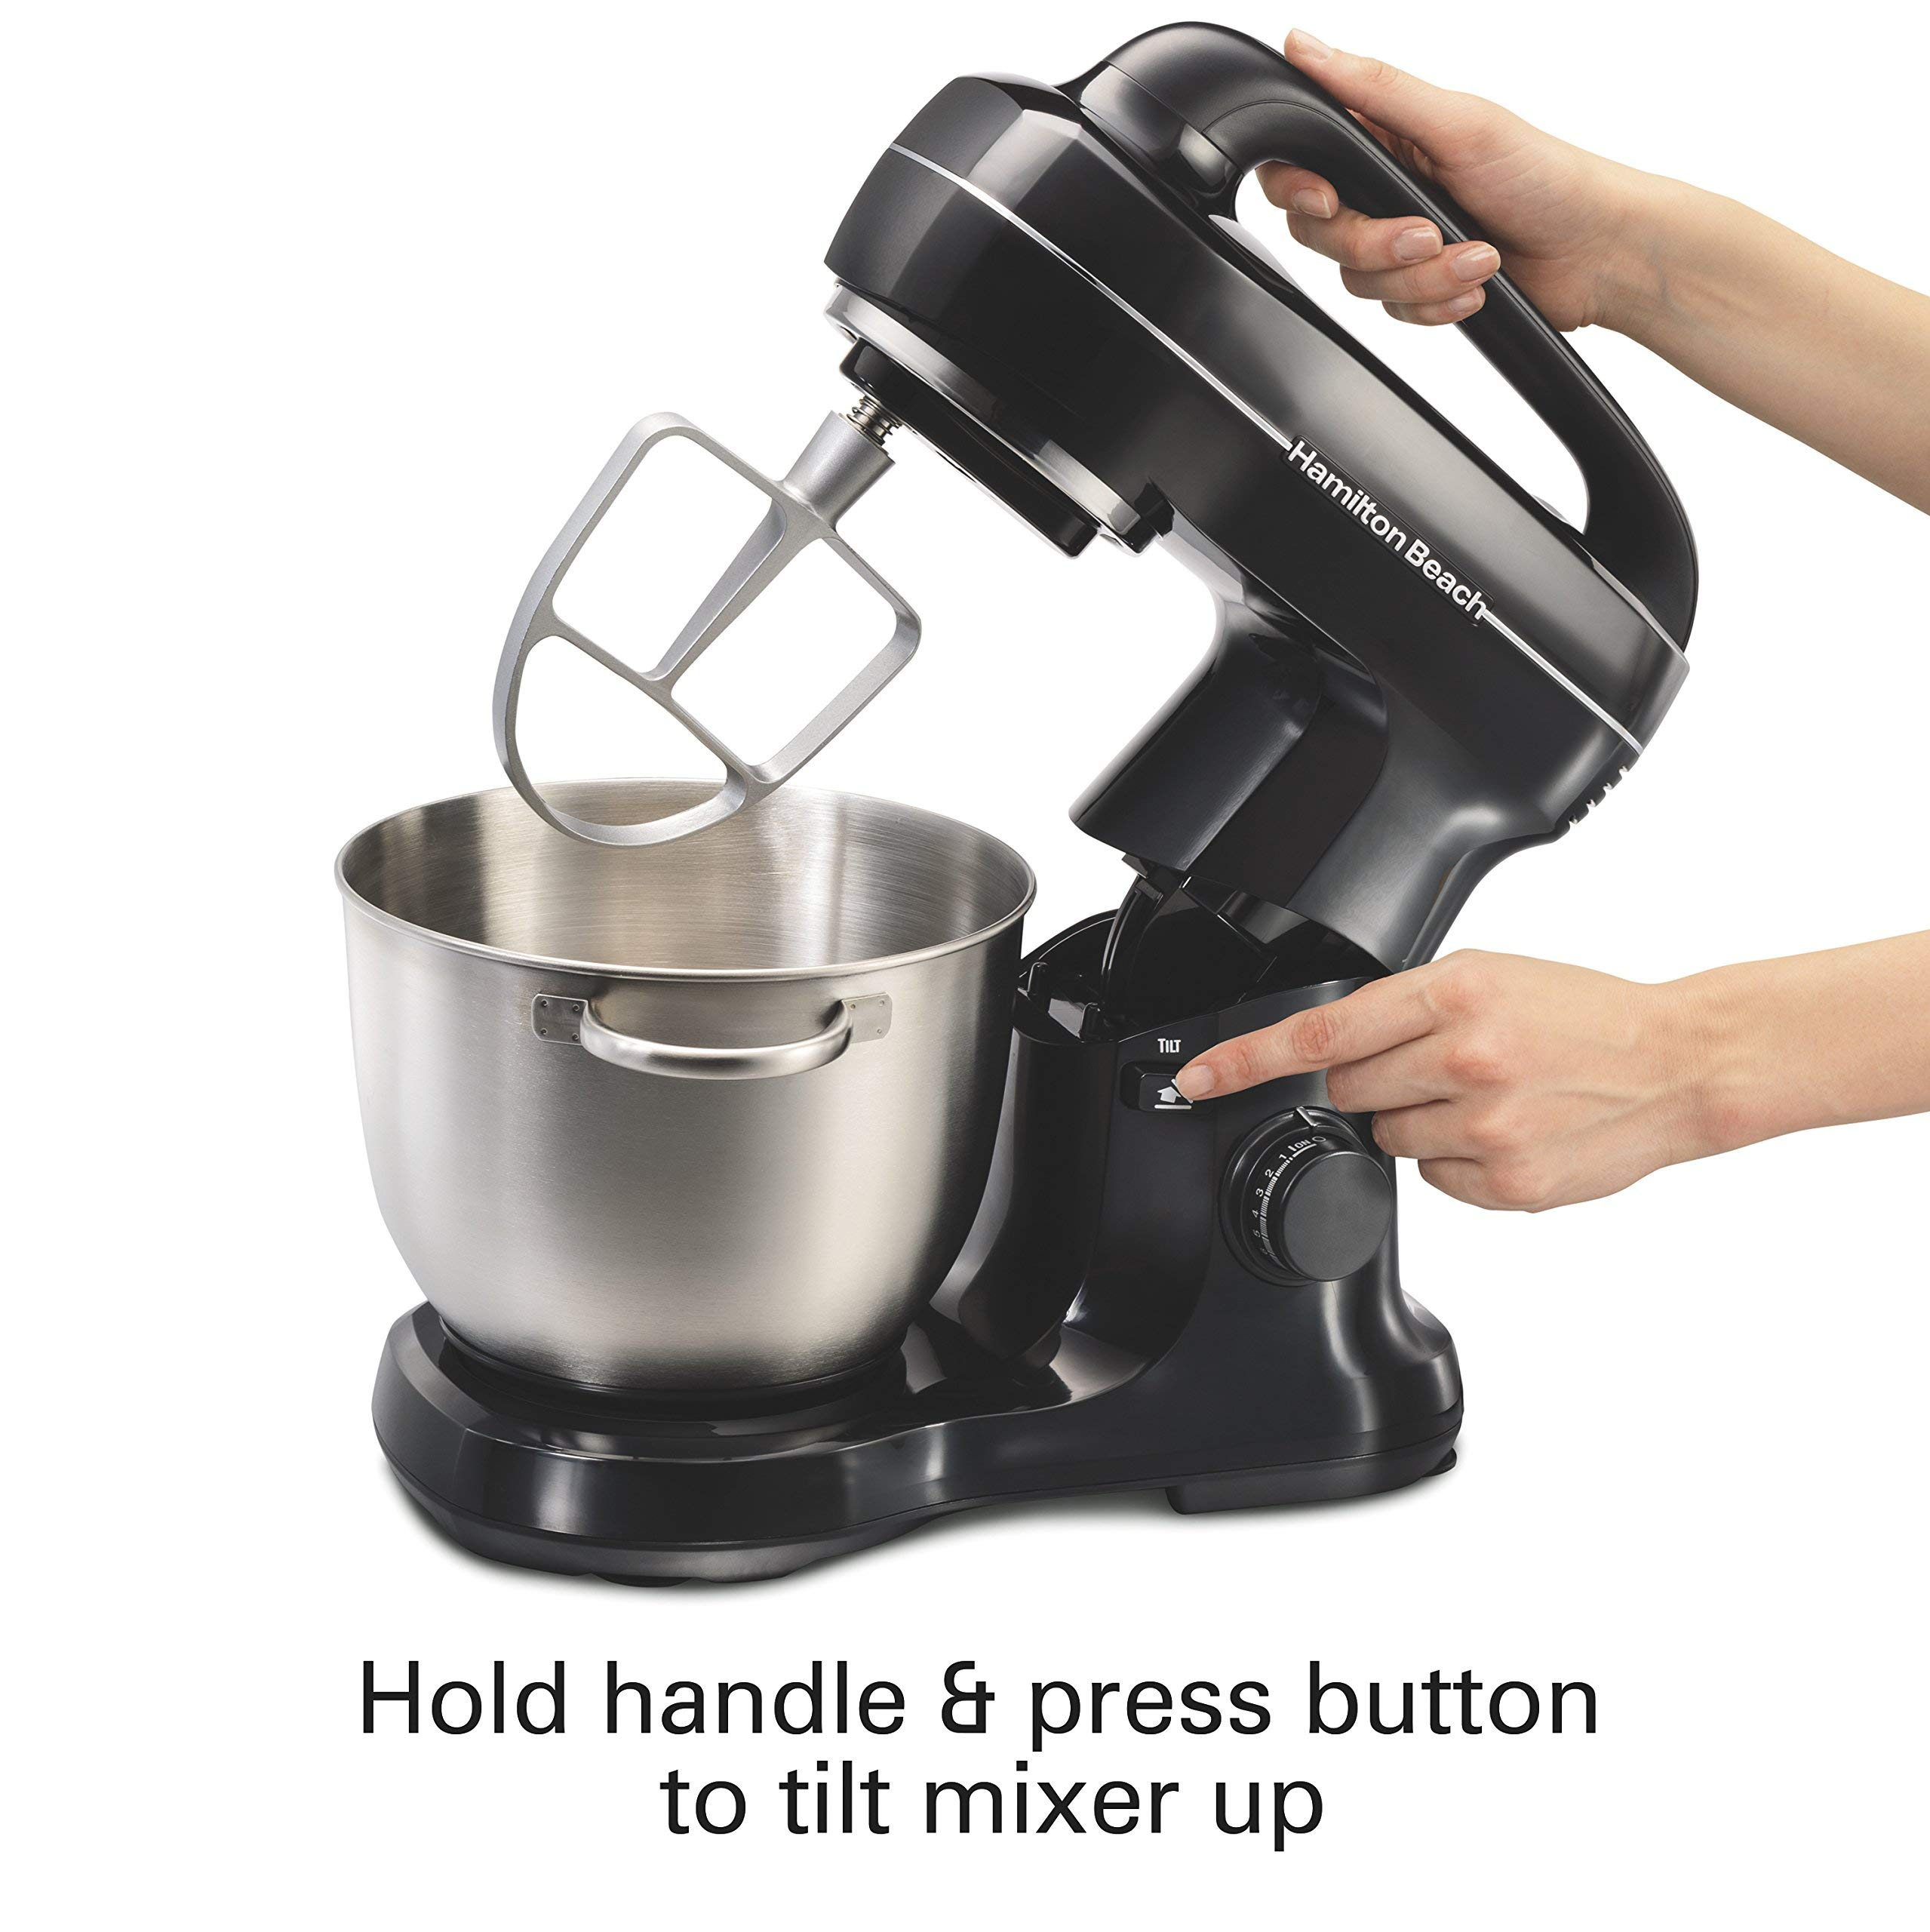 Hamilton Beach 63391 Stand Mixer, 7 Speeds with Whisk, Dough Hook, Flat Beater Attachments, 4 Quart, Black (Renewed) by Hamilton Beach (Image #4)